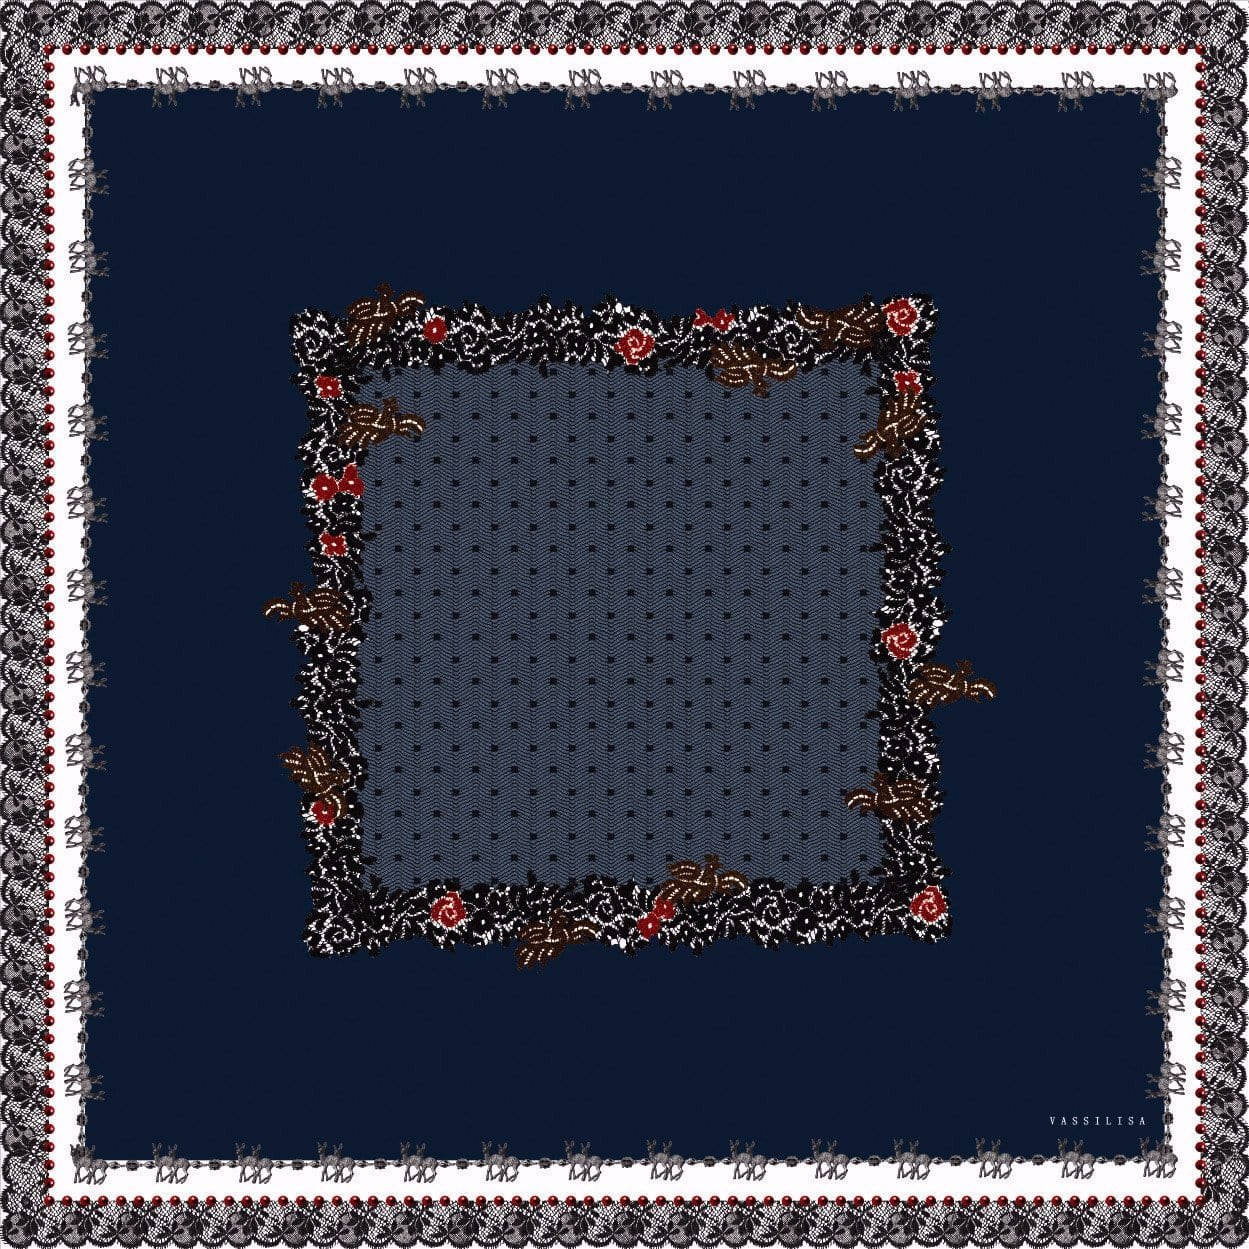 Vassilisa: Scarf with lace and bambi in navy | Accessories > Scarves,Accessories -  Hiphunters Shop